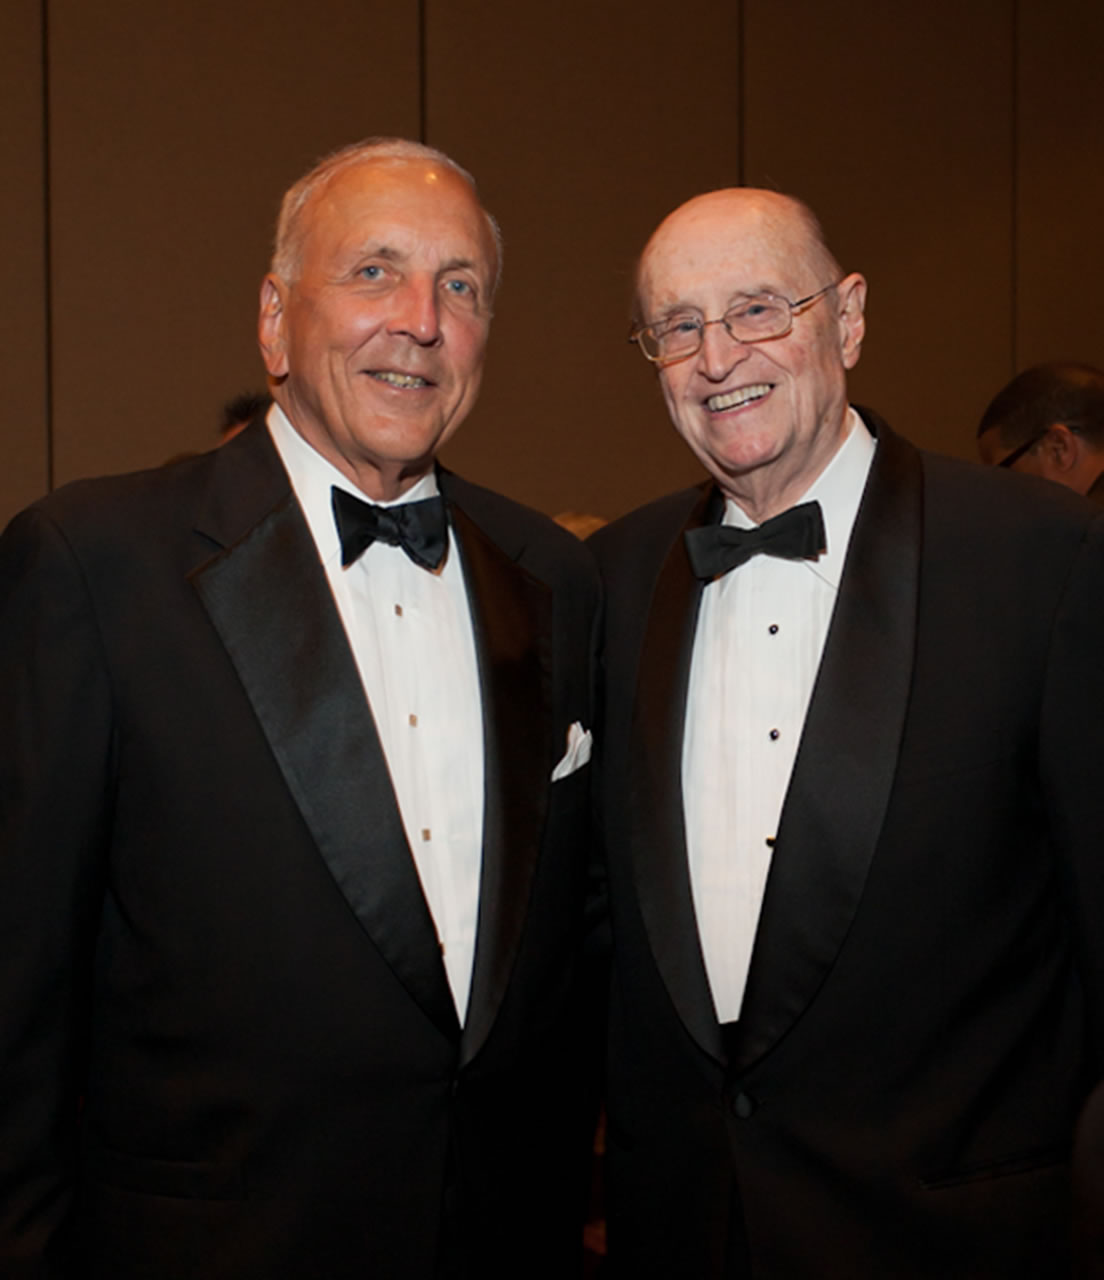 Smoky Bissell and John Belk at a black tie - Ginger Wagoner, Photographer, Photosynthesis